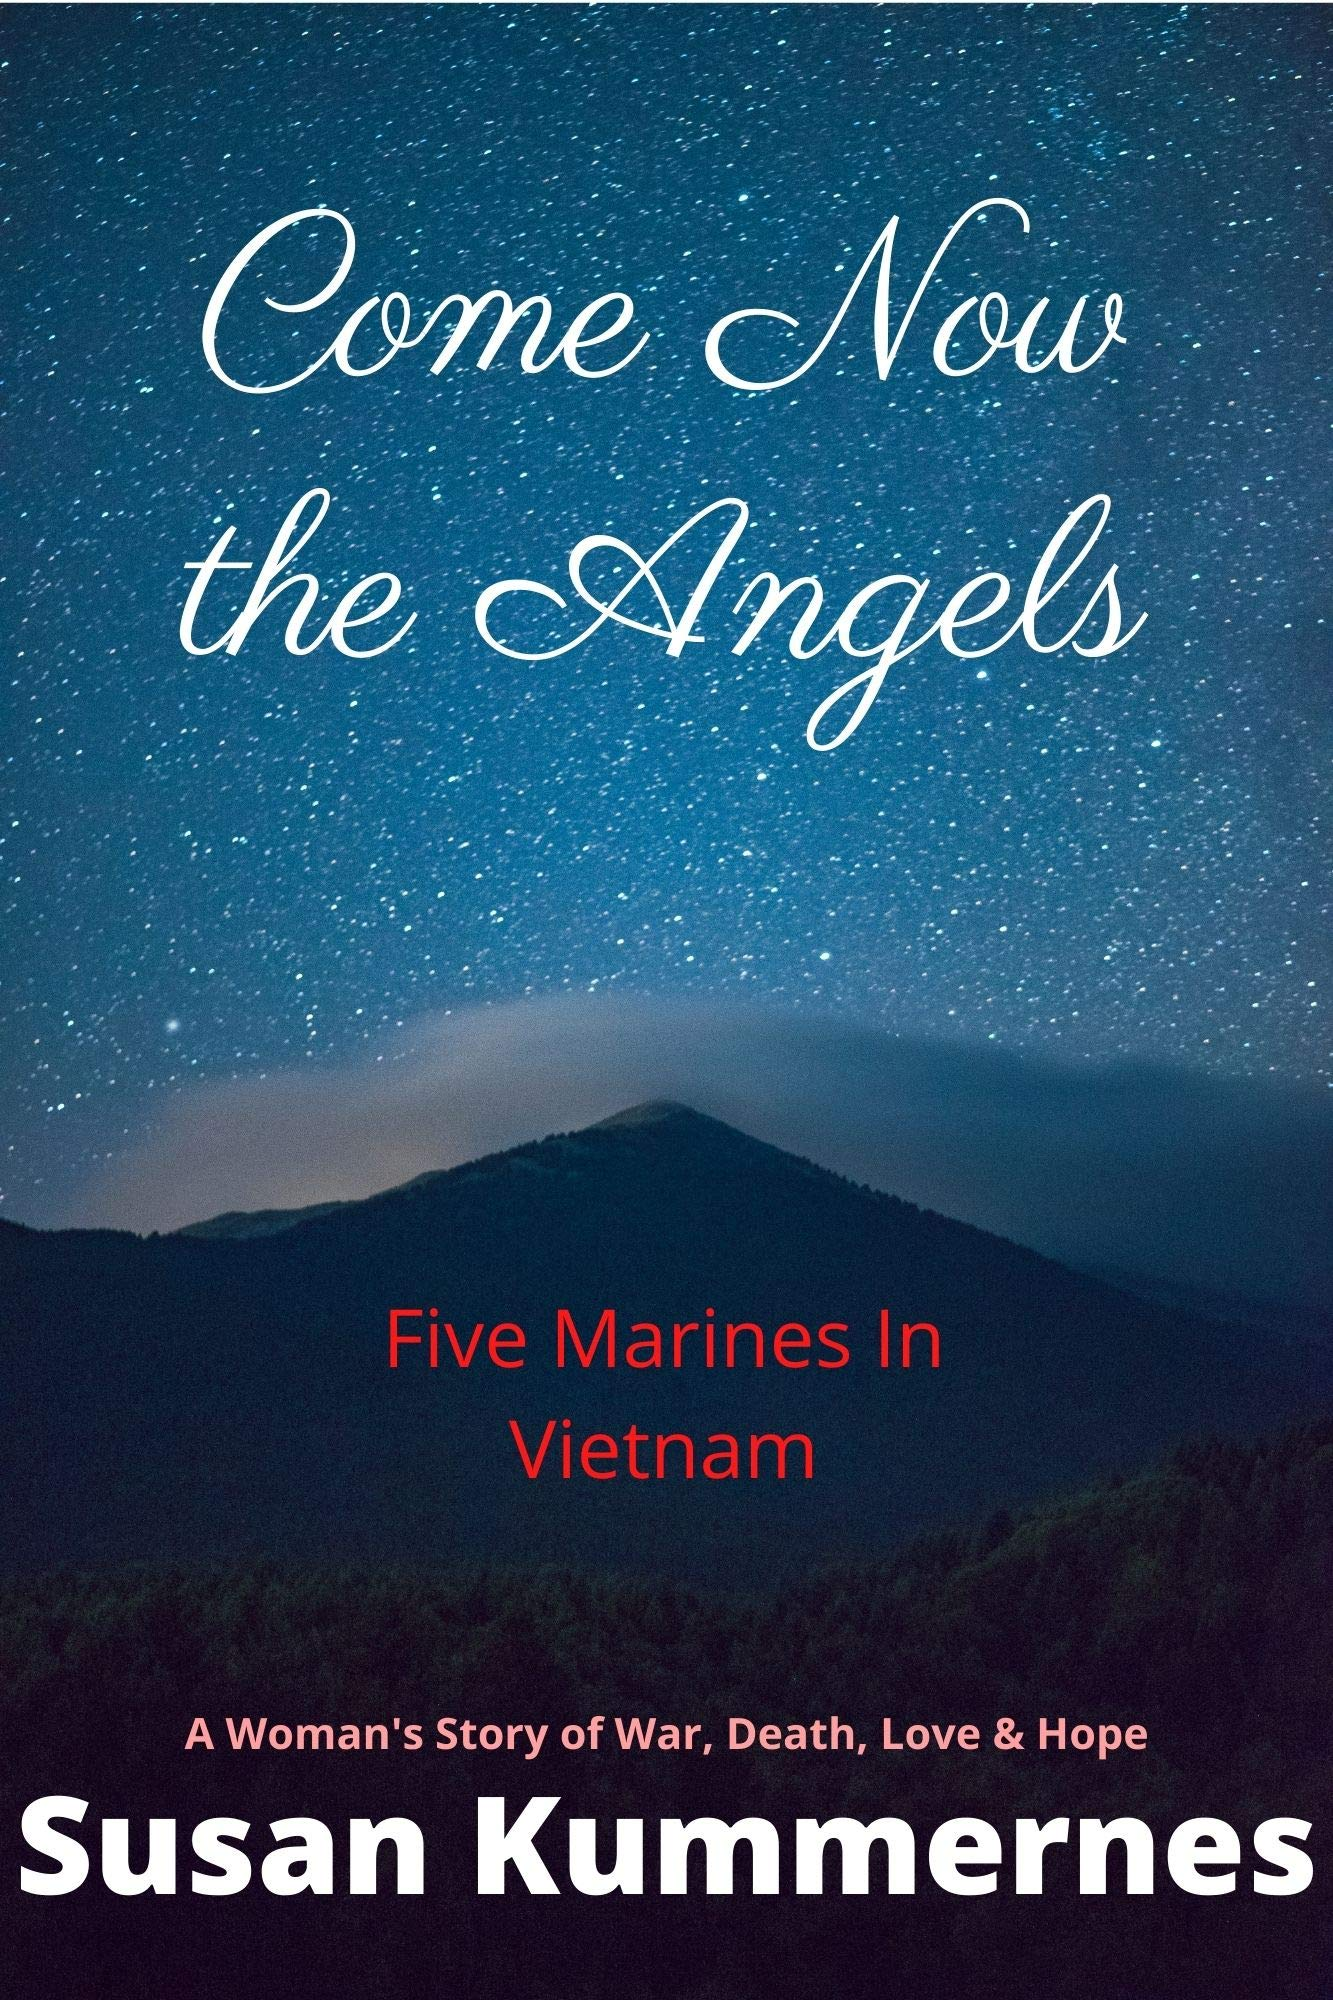 Come Now The Angels: Five Marines in Vietnam - A Woman's Story of War, Death, Love & Hope